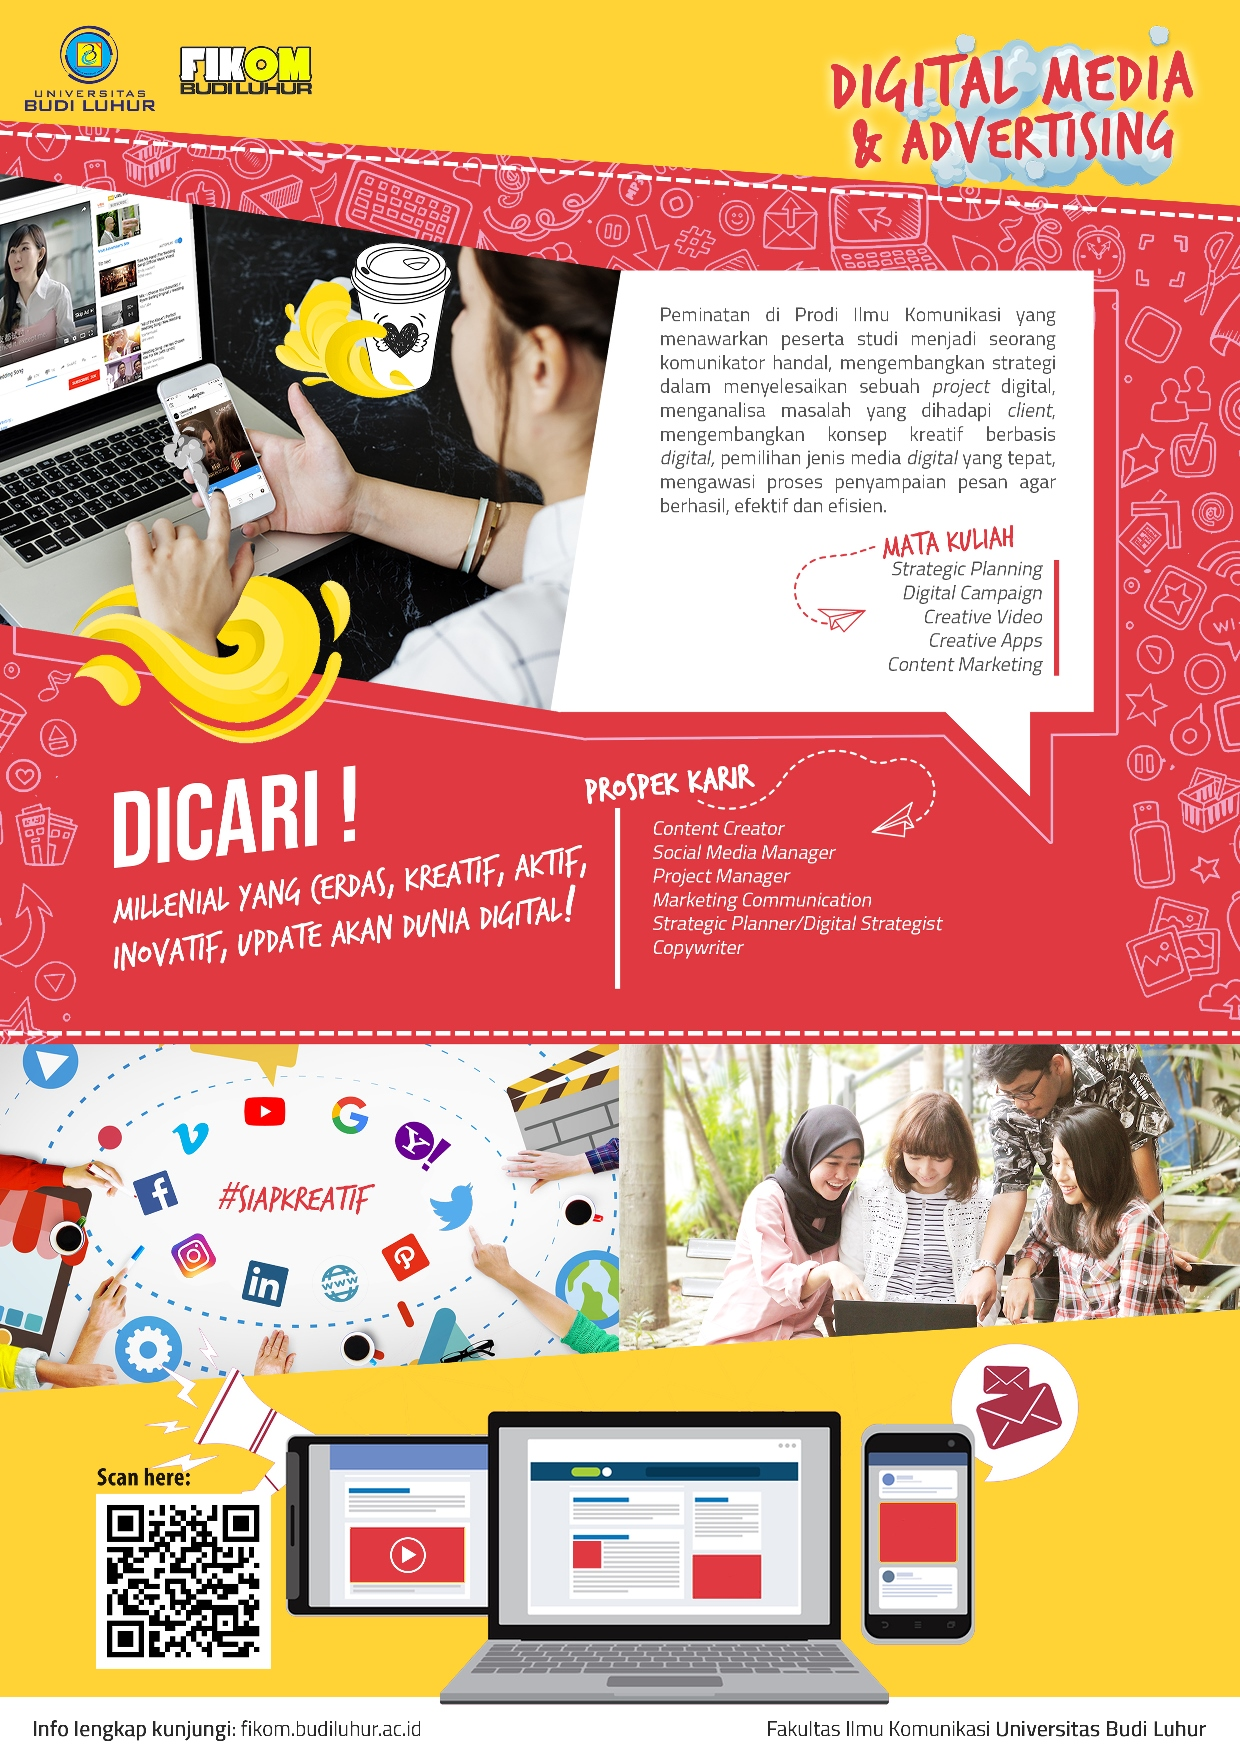 Digital Media & Advertising